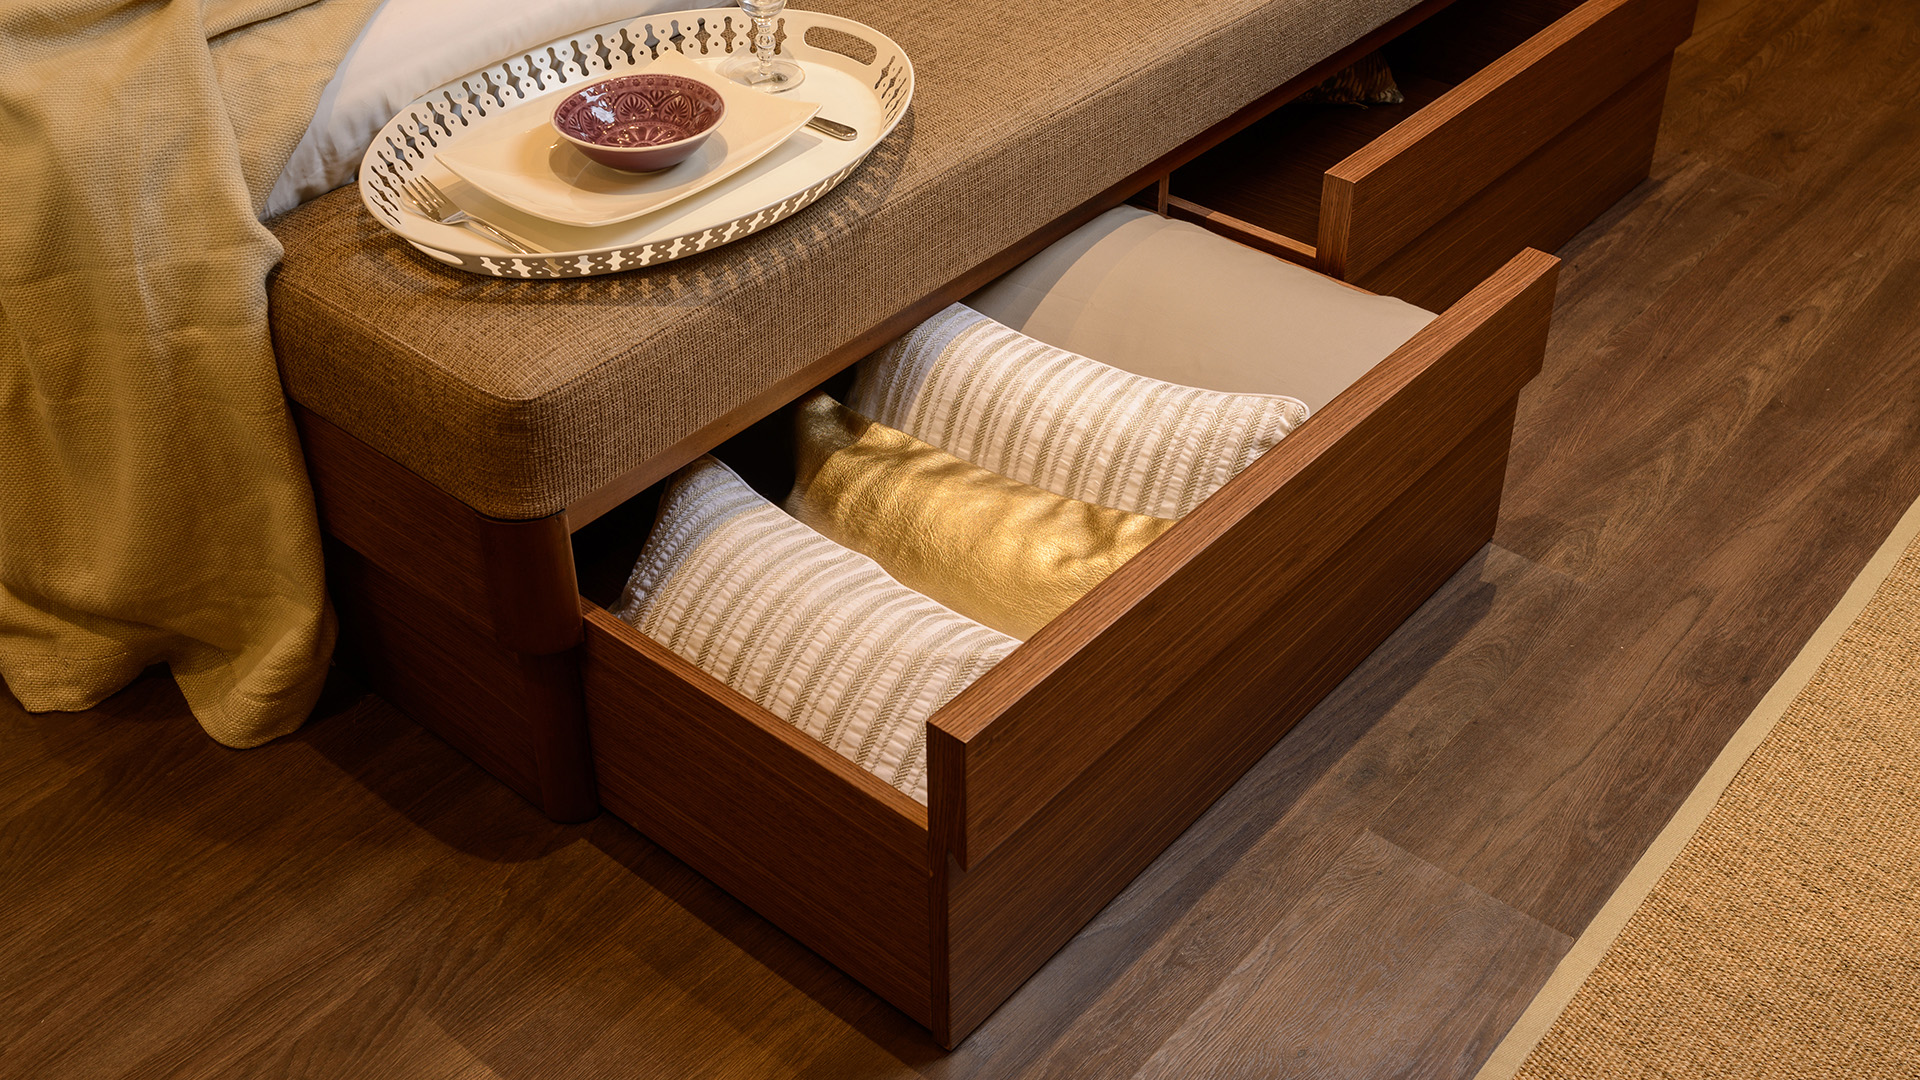 Andalusia master Bed 180 with drawers